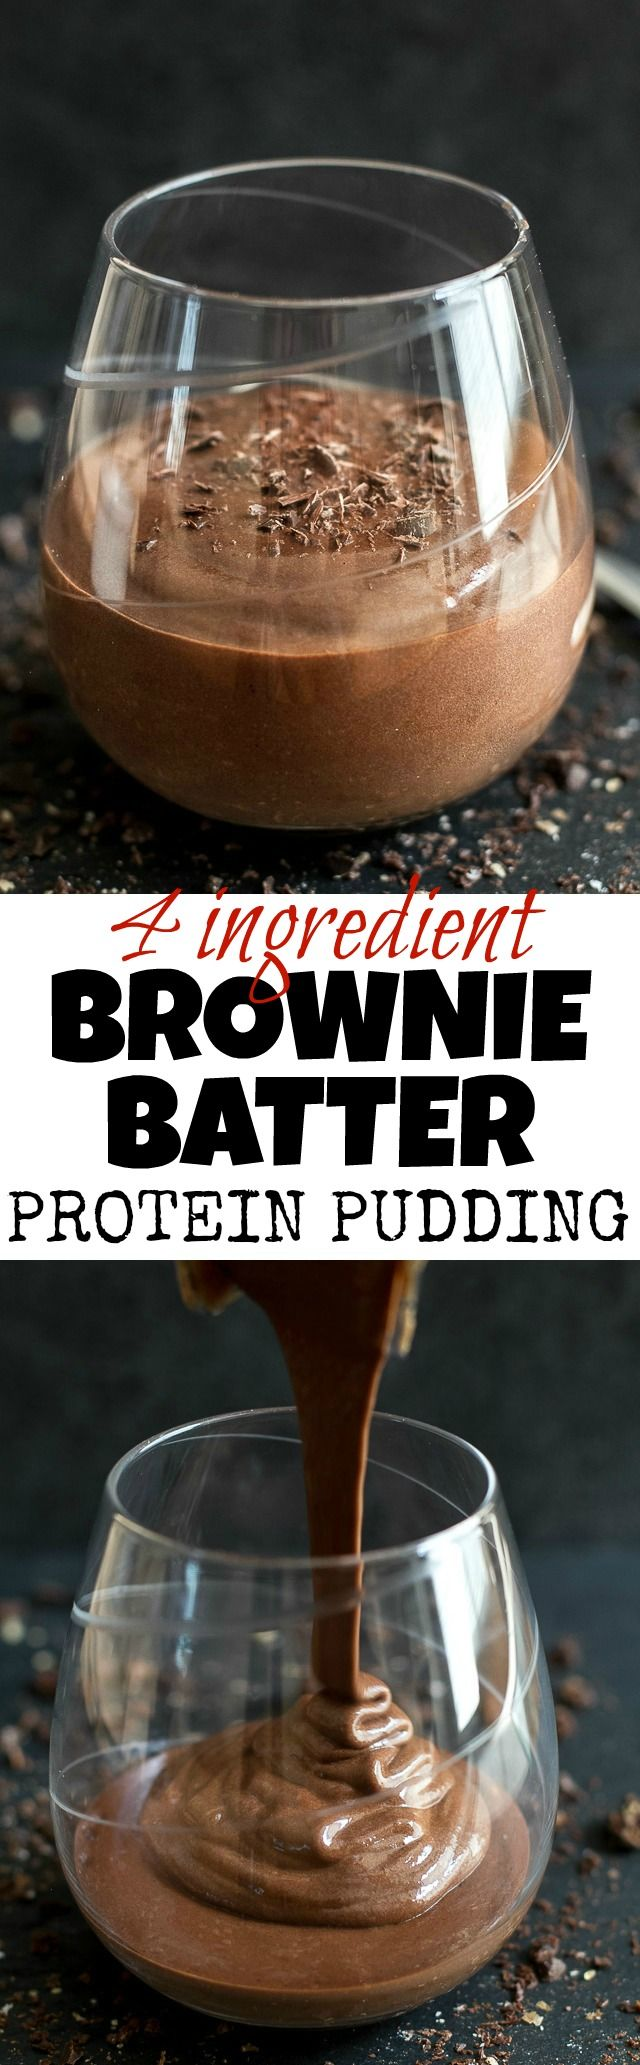 Brownie Batter Protein Pudding - high in protein and packed with a rich chocolate flavour, this addictively DELICIOUS recipe requires only 4 ingredients and 5 minutes to make! | runningwithspoons.com #vegan #glutenfree #healthy